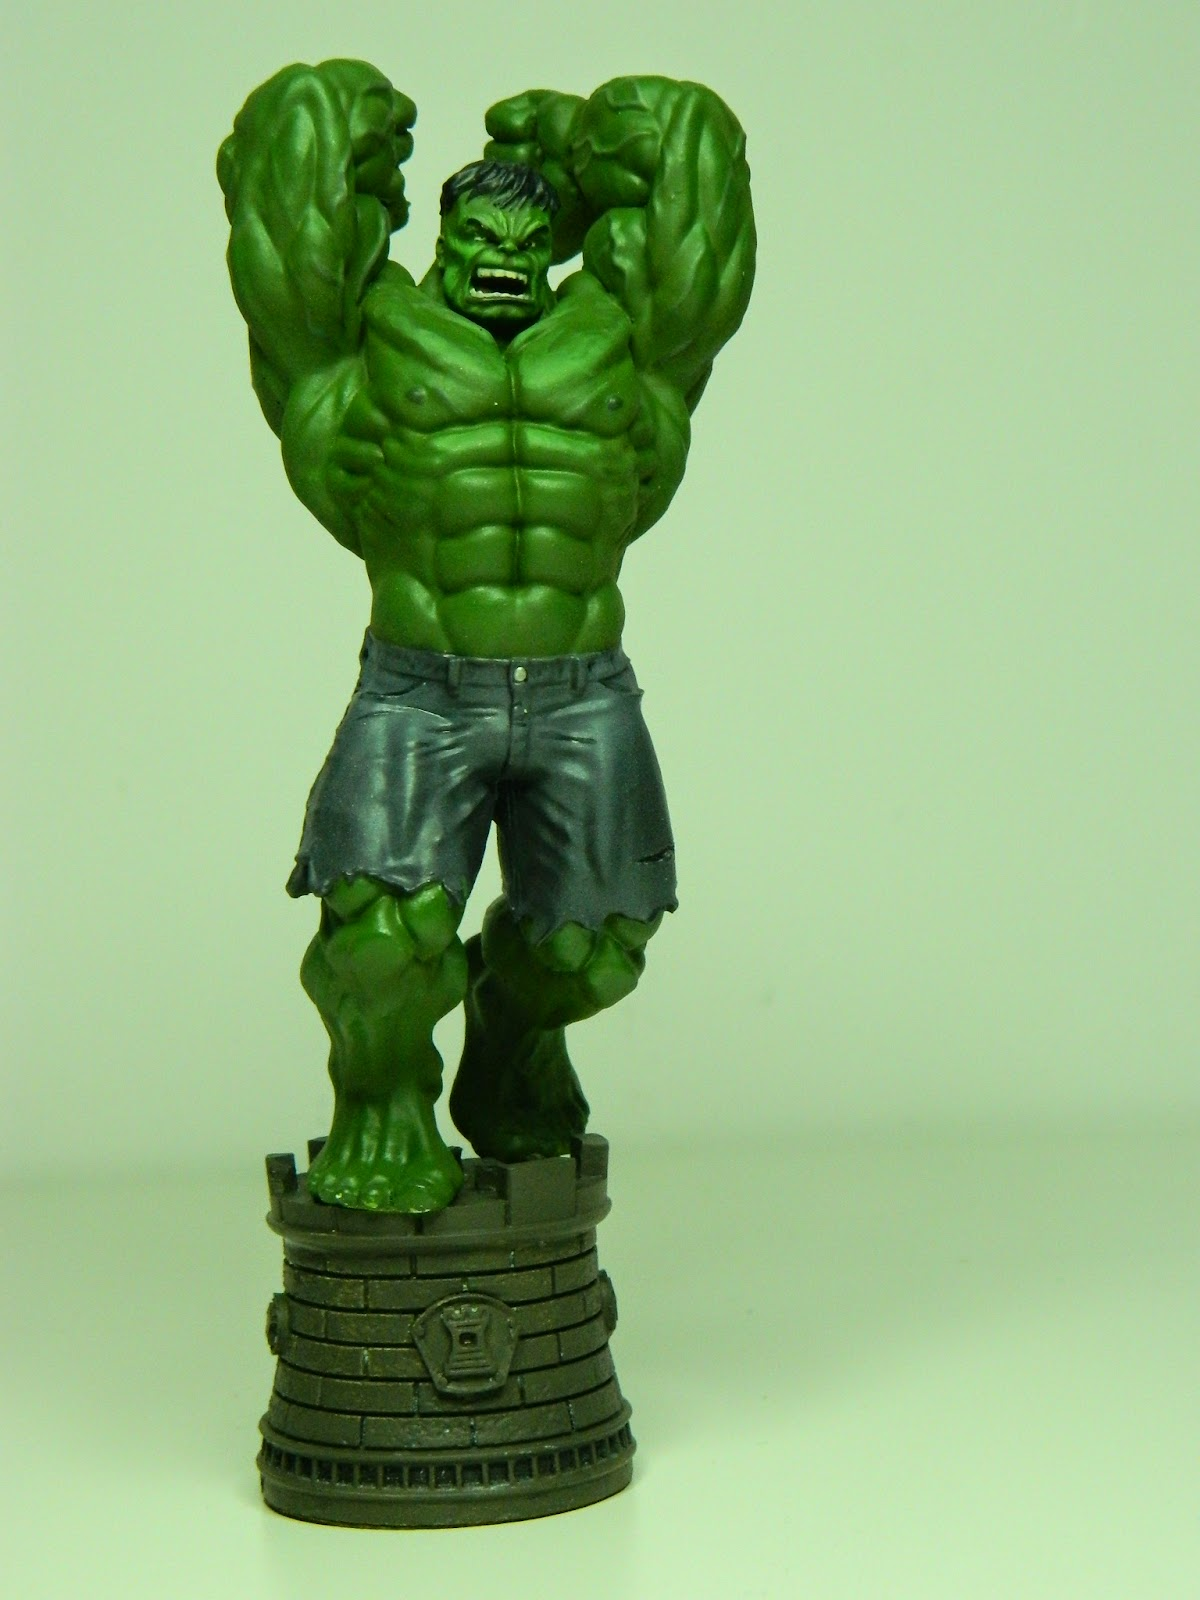 mikes modeling hulk smash marvel chess collection rook repainted